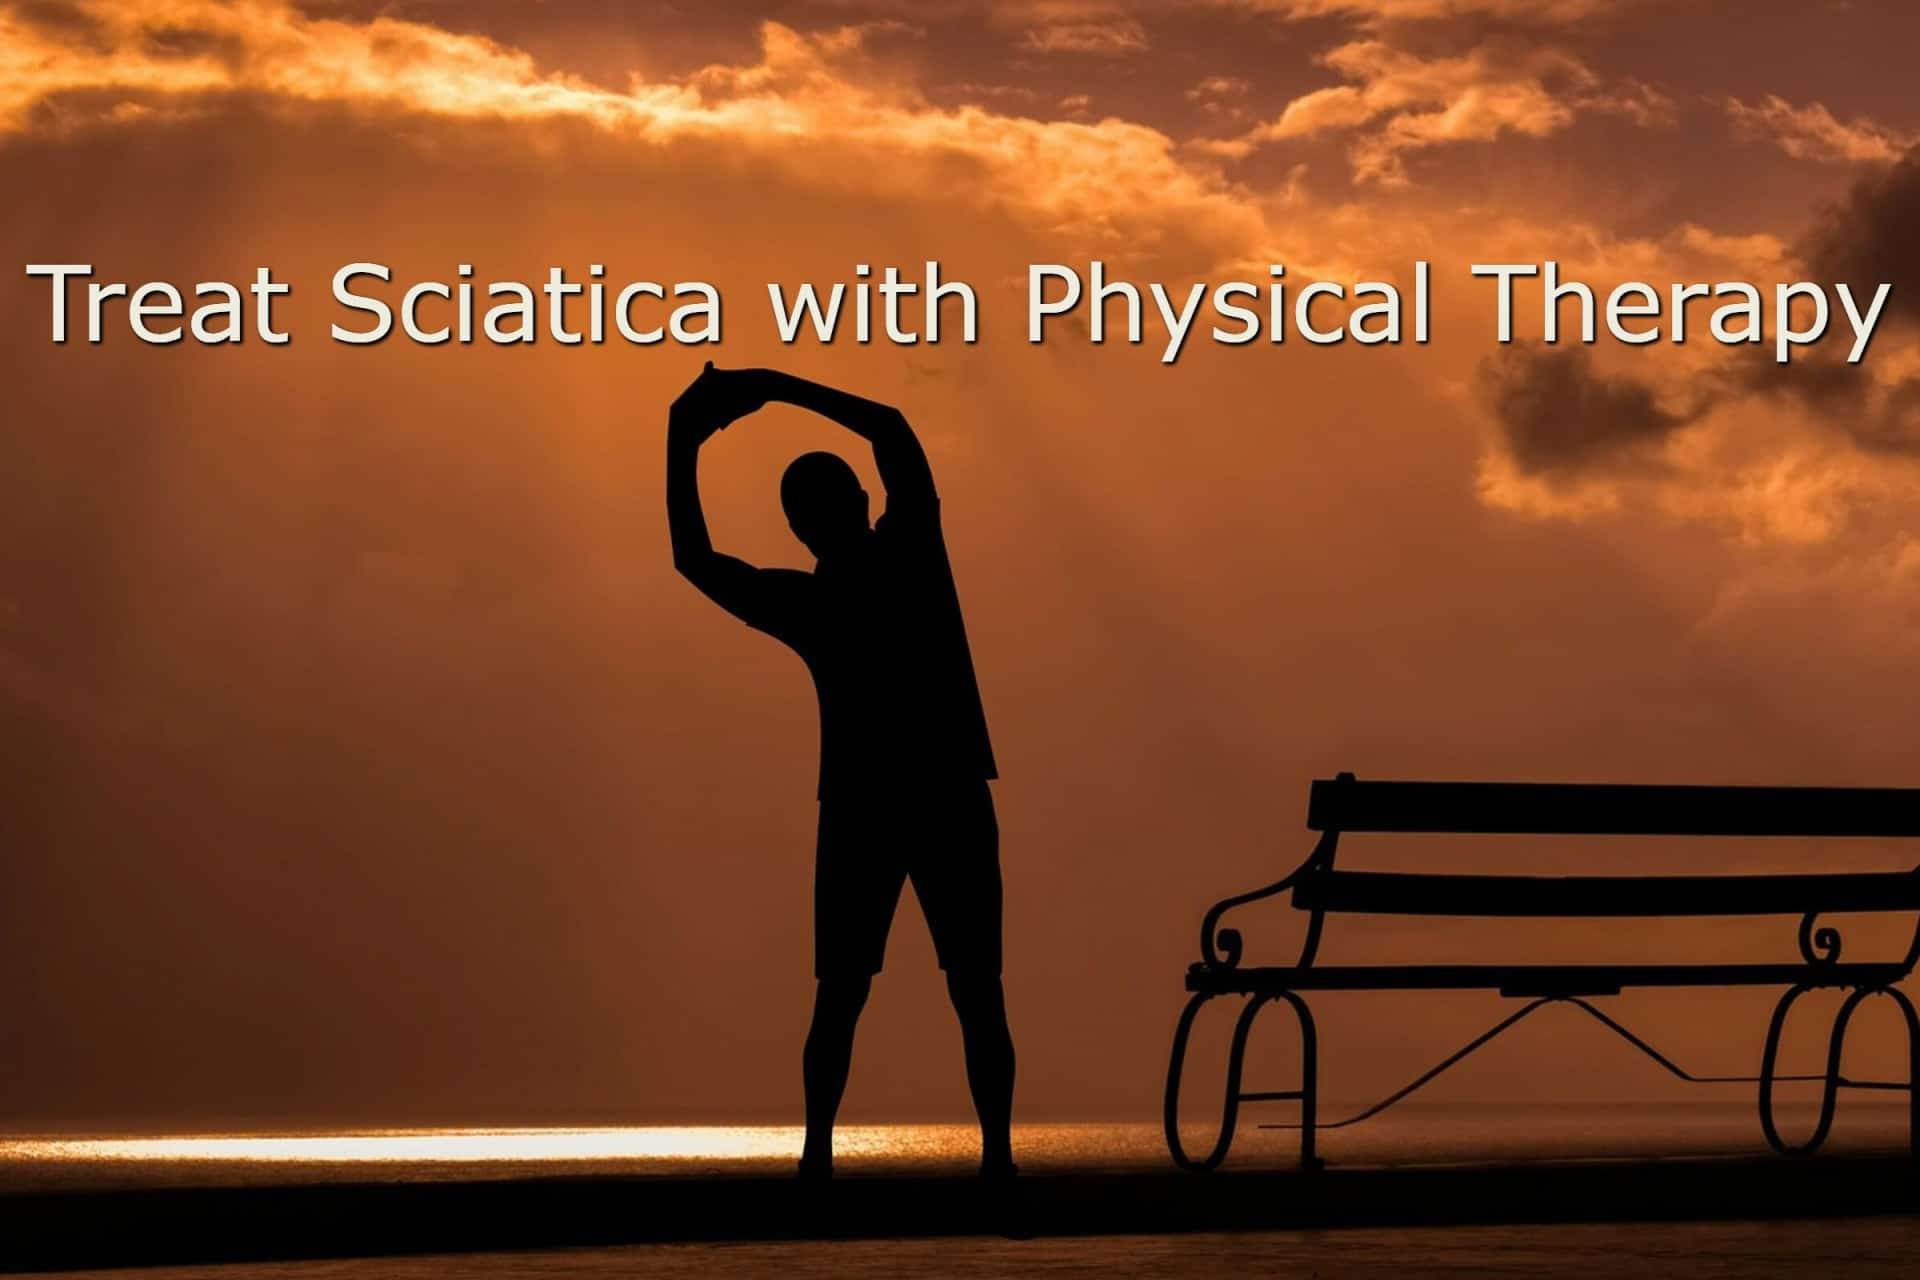 Can Physical Therapy Help Treat Sciatica?